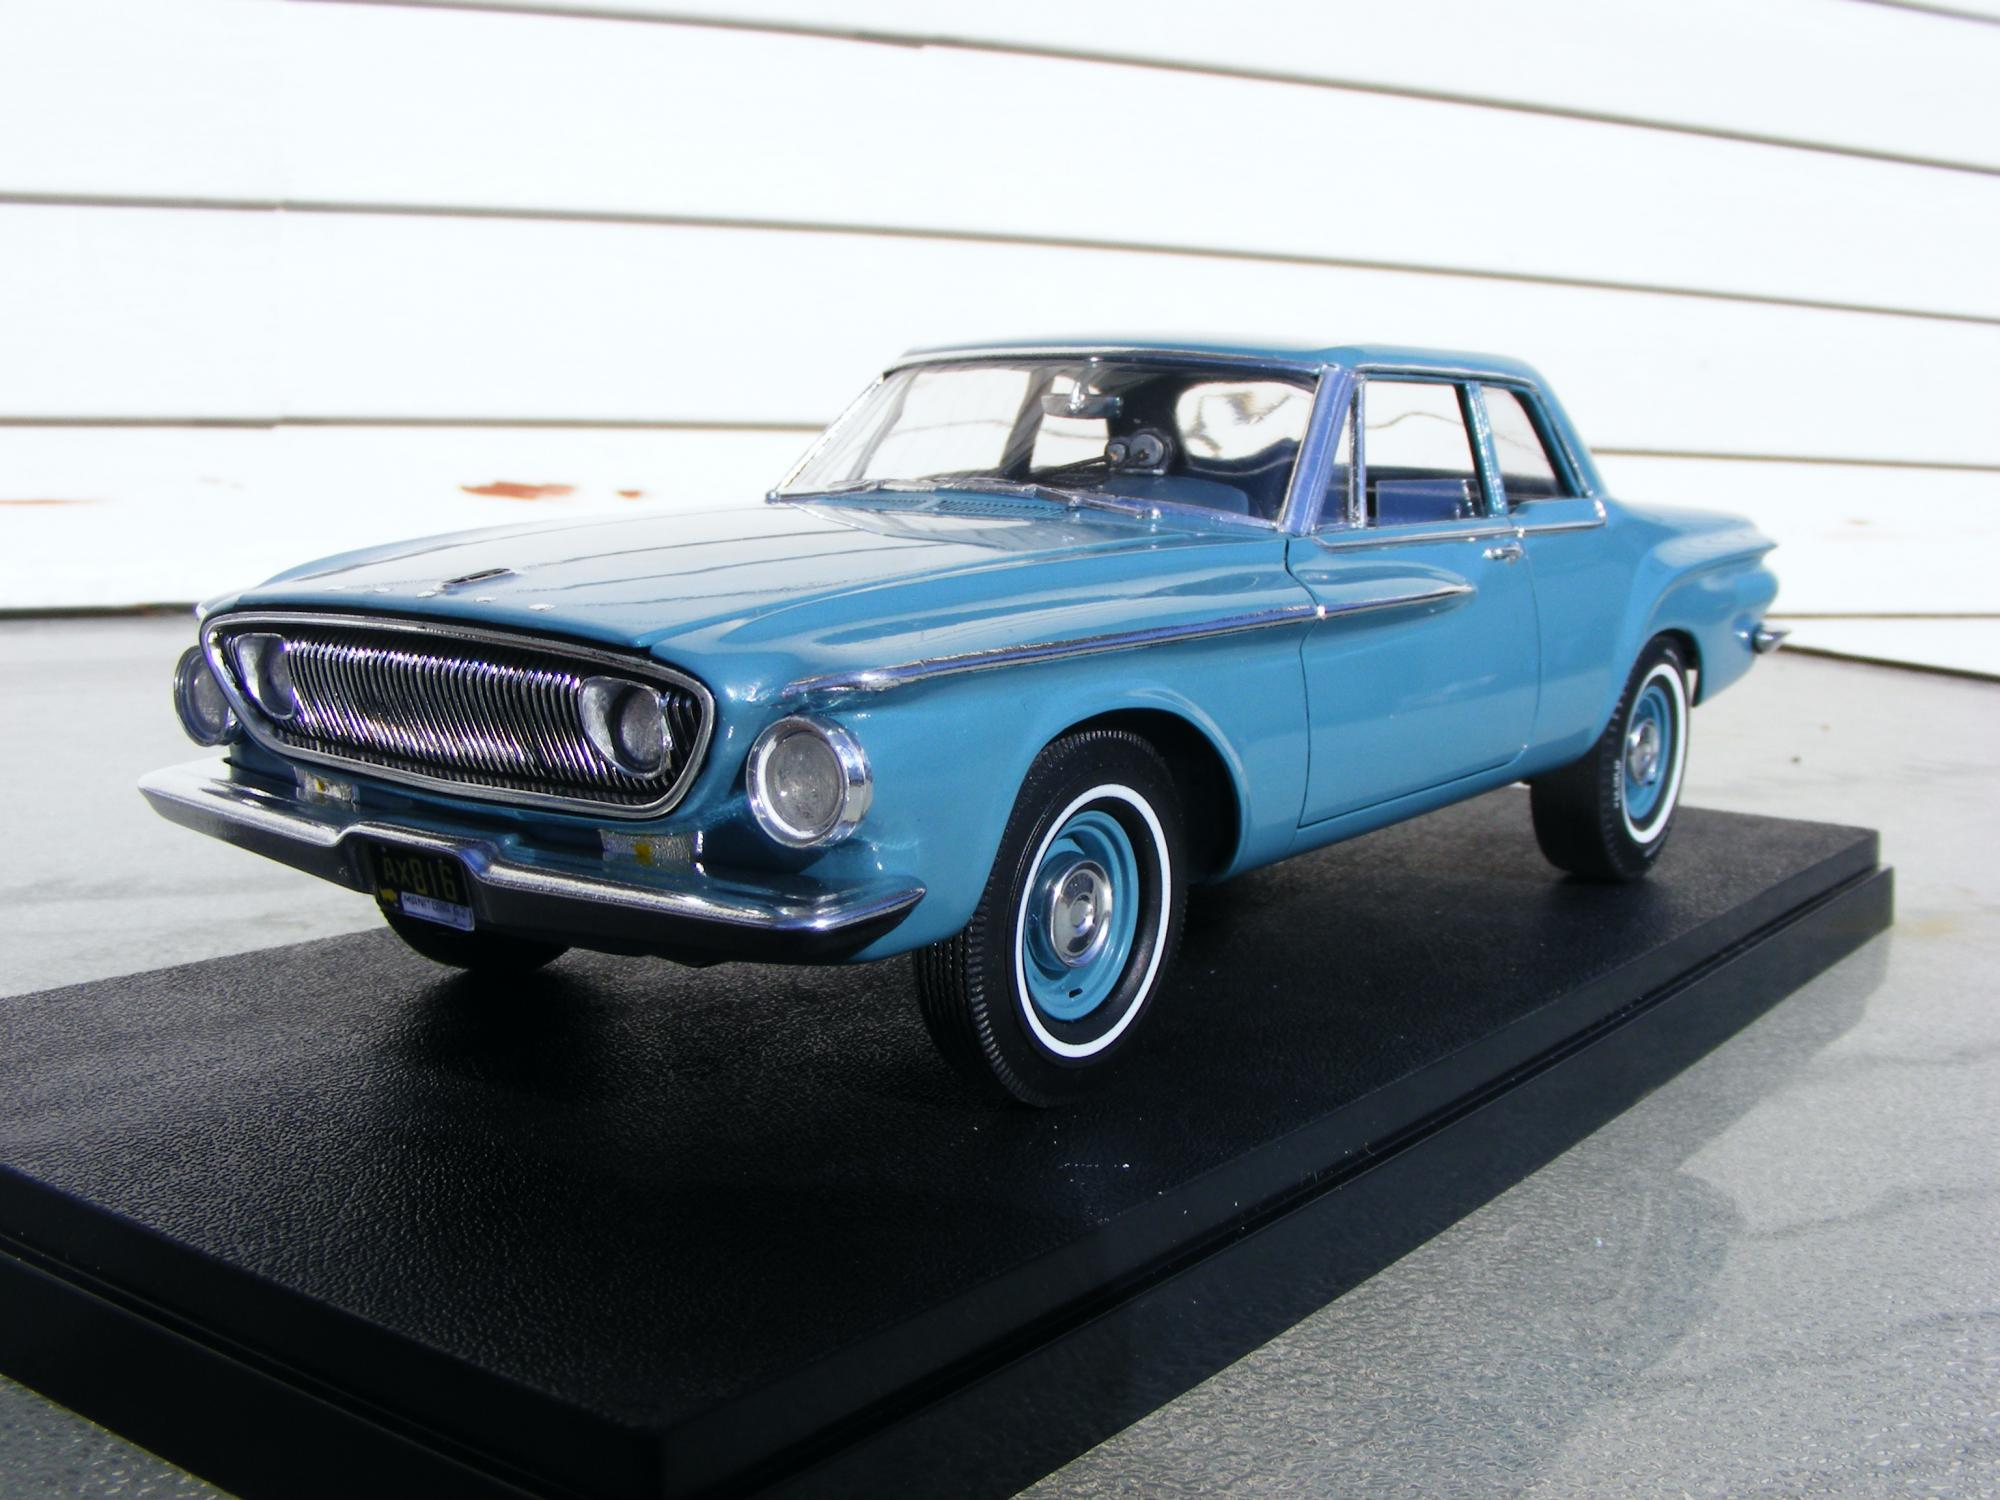 Johan 1962 Dodge Dart 330 Max Wedge Model Cars Model Cars Magazine Forum